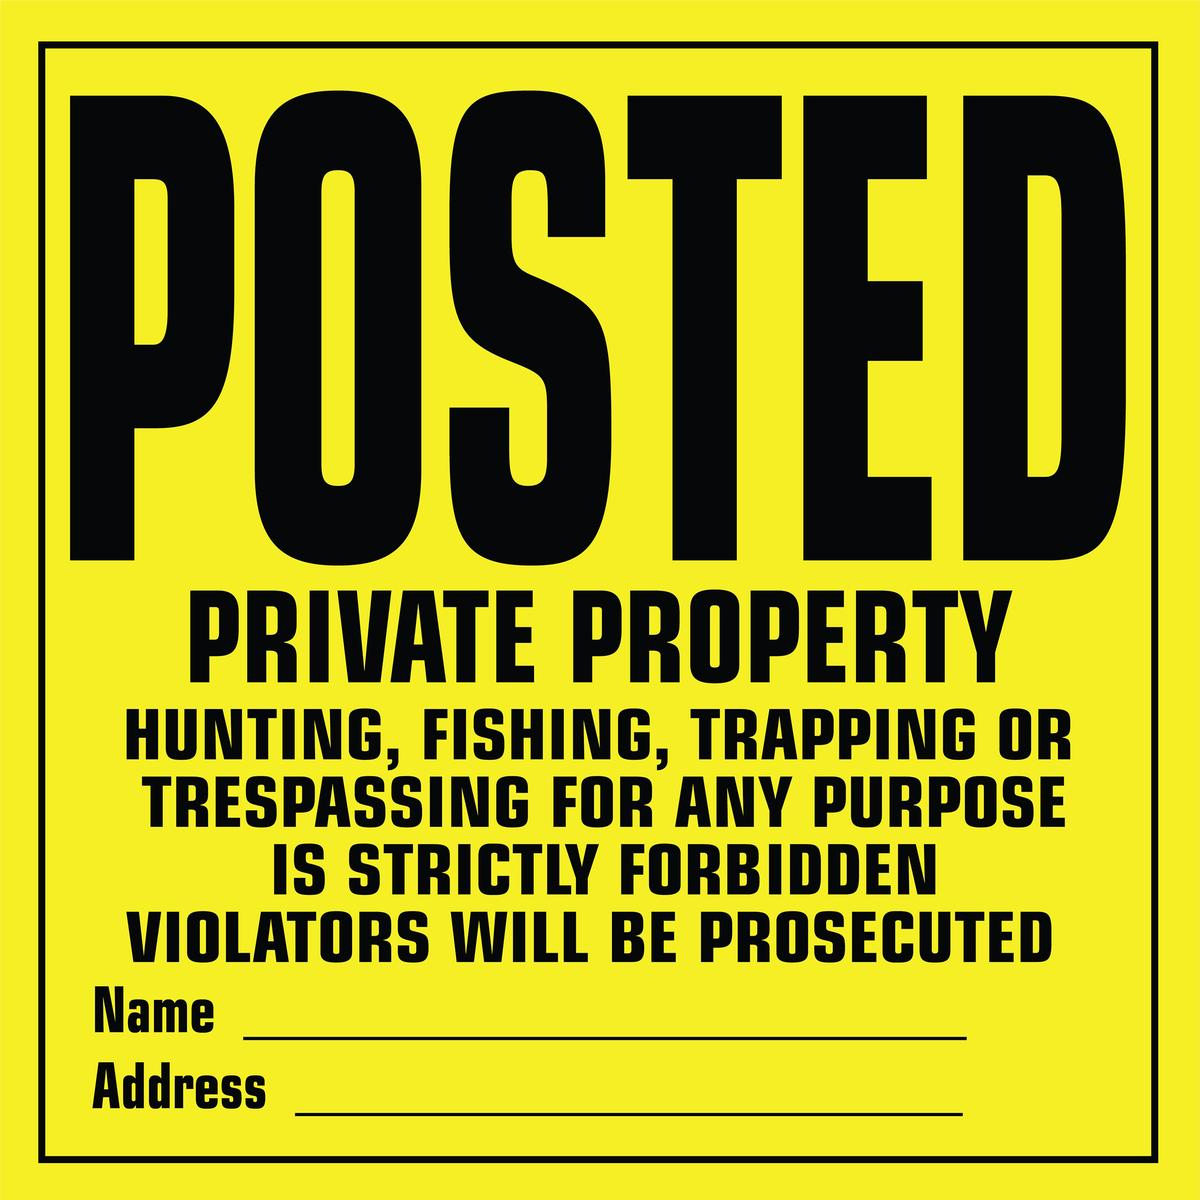 Yukon Gear Private Property Posted Hunting Signs 12 ct Pack